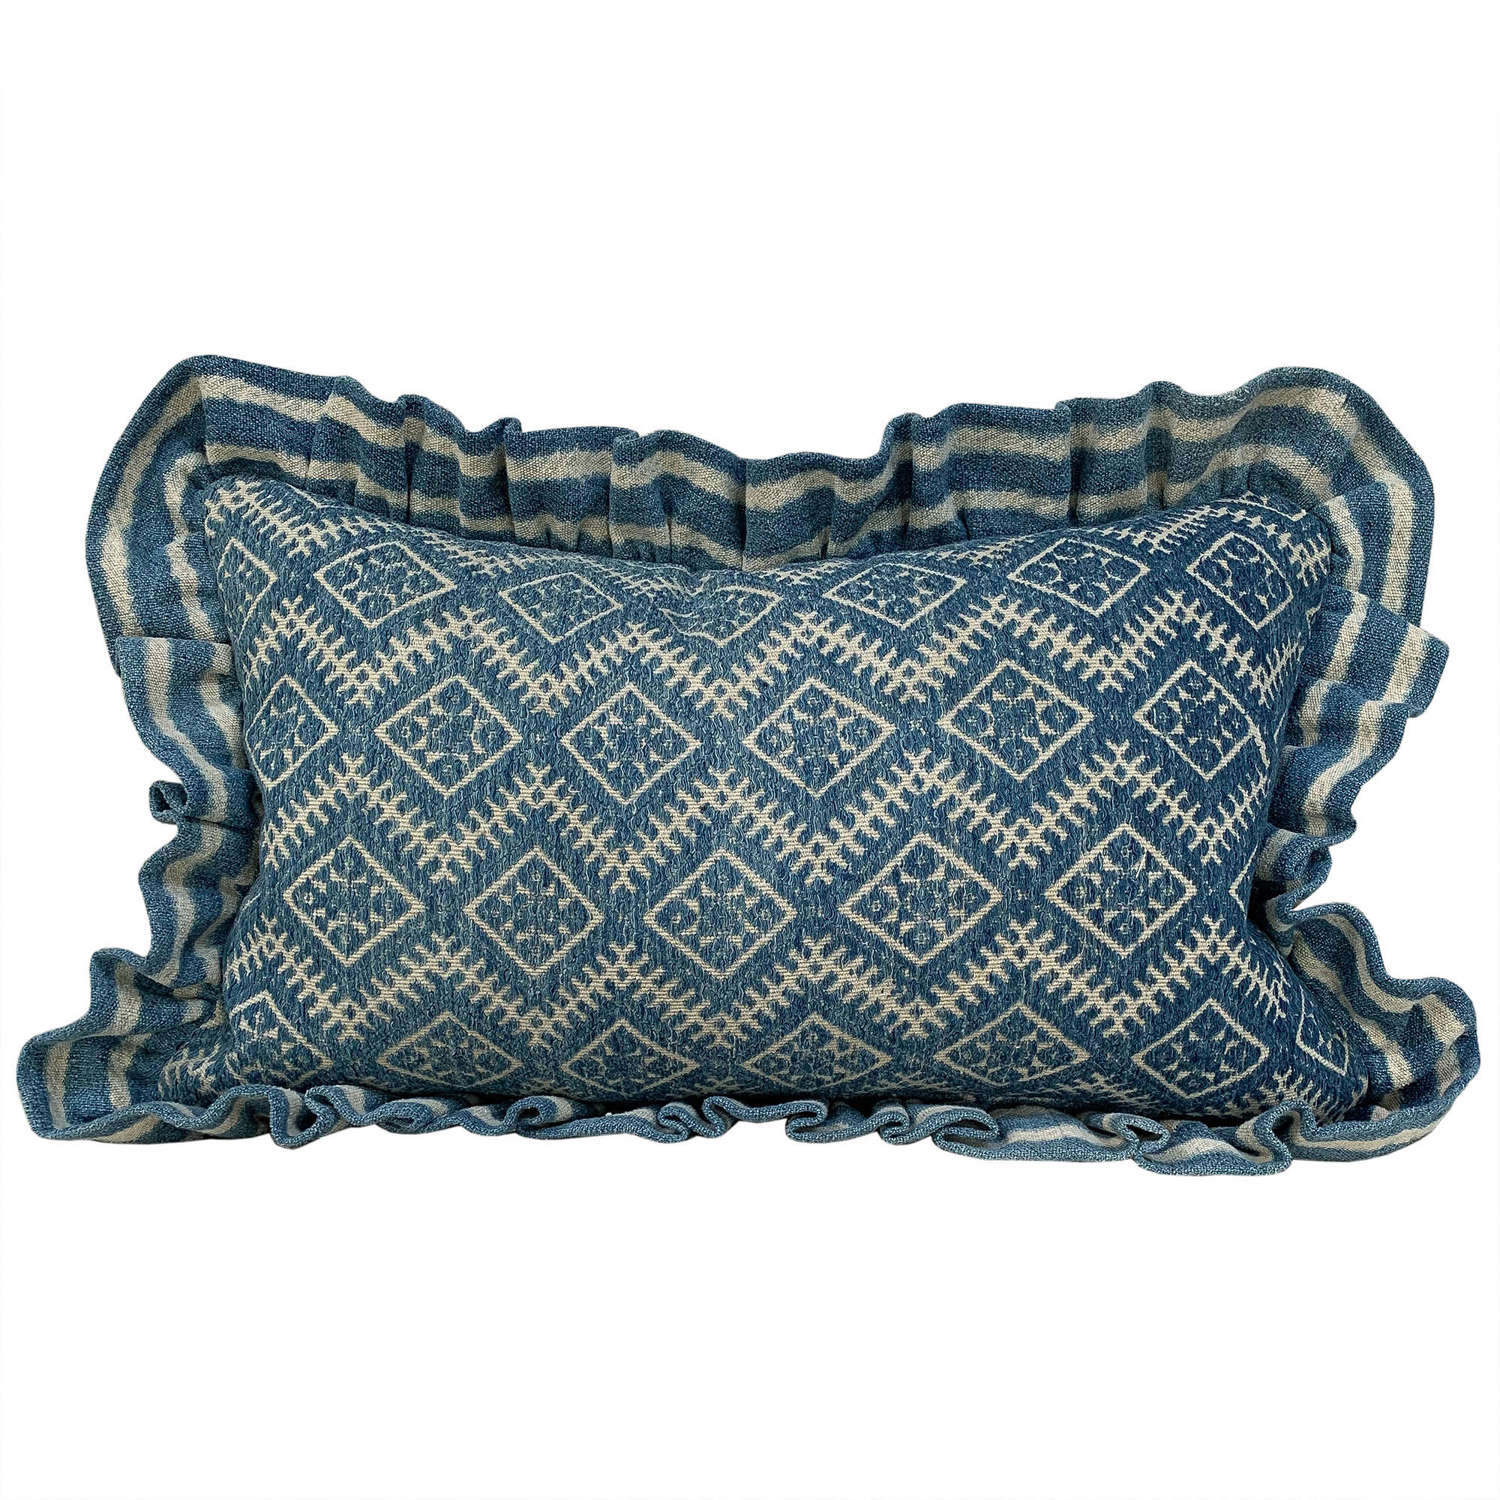 Zhuang cushion with Mossi frill